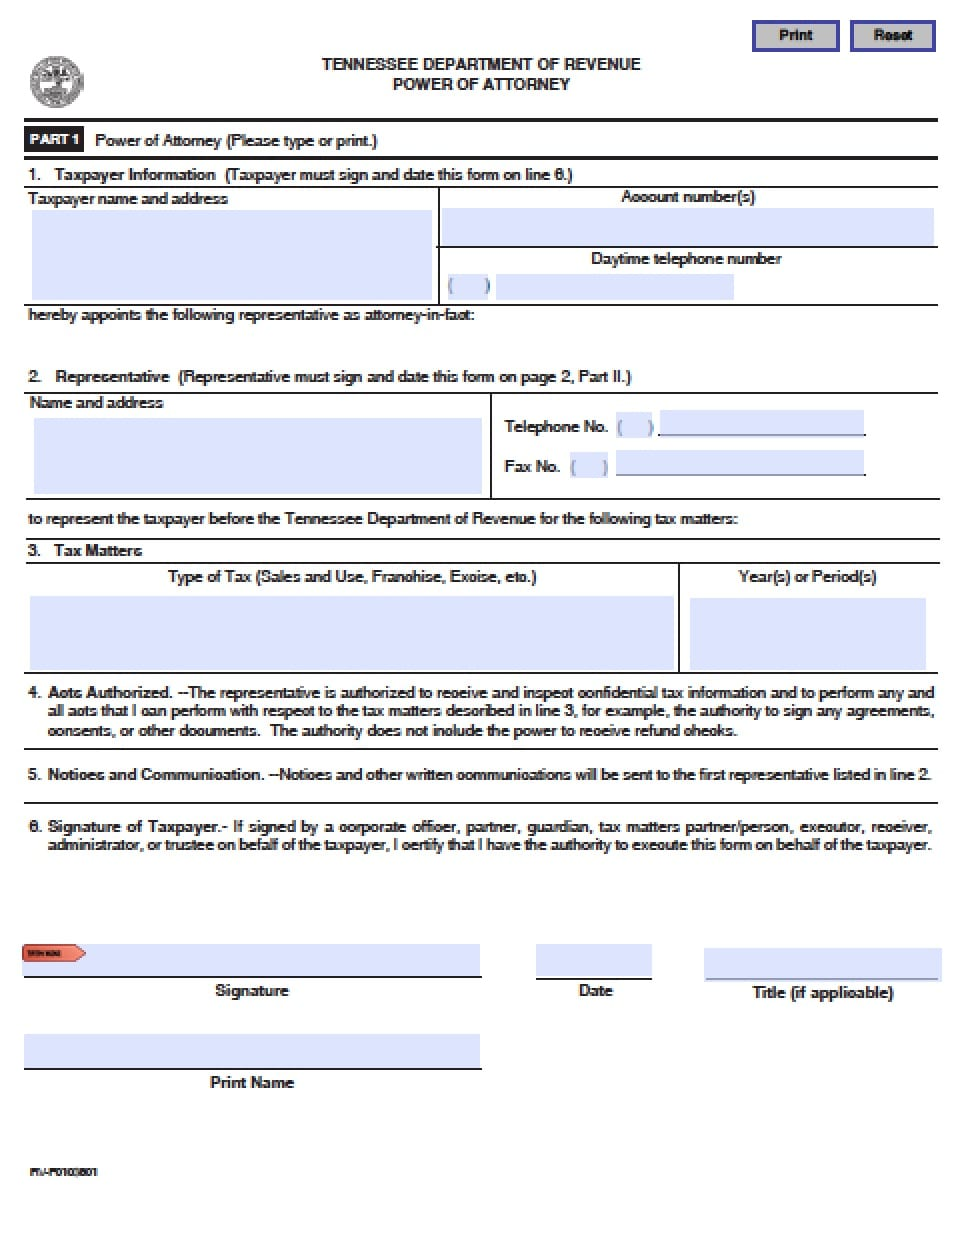 how to change power of attorney document